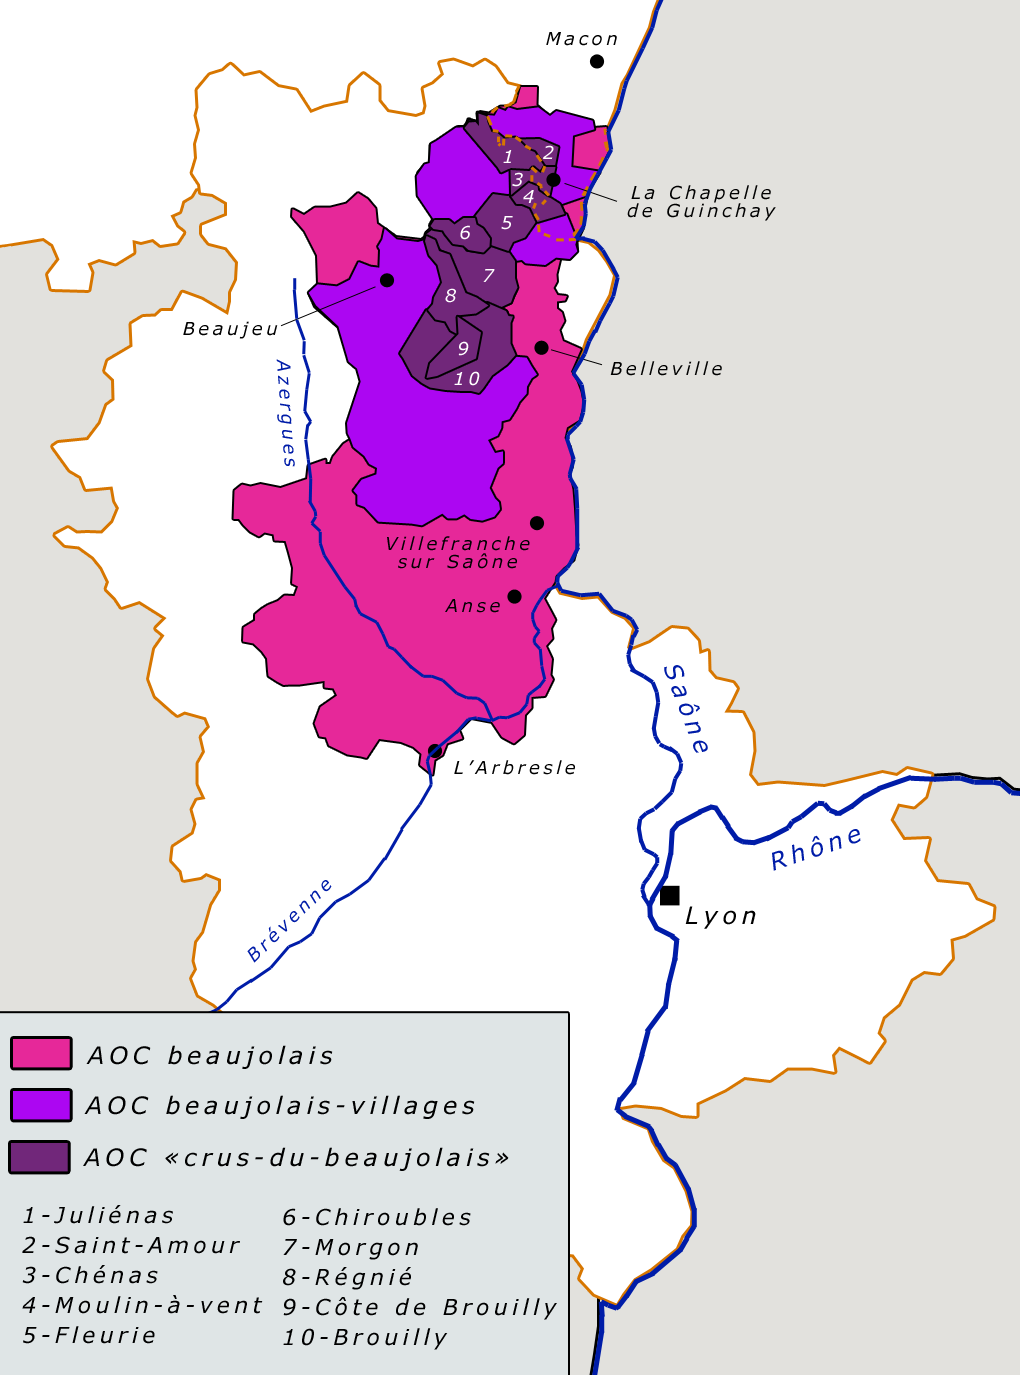 https://upload.wikimedia.org/wikipedia/commons/d/d8/Carte_vignoble_beaujolais.png